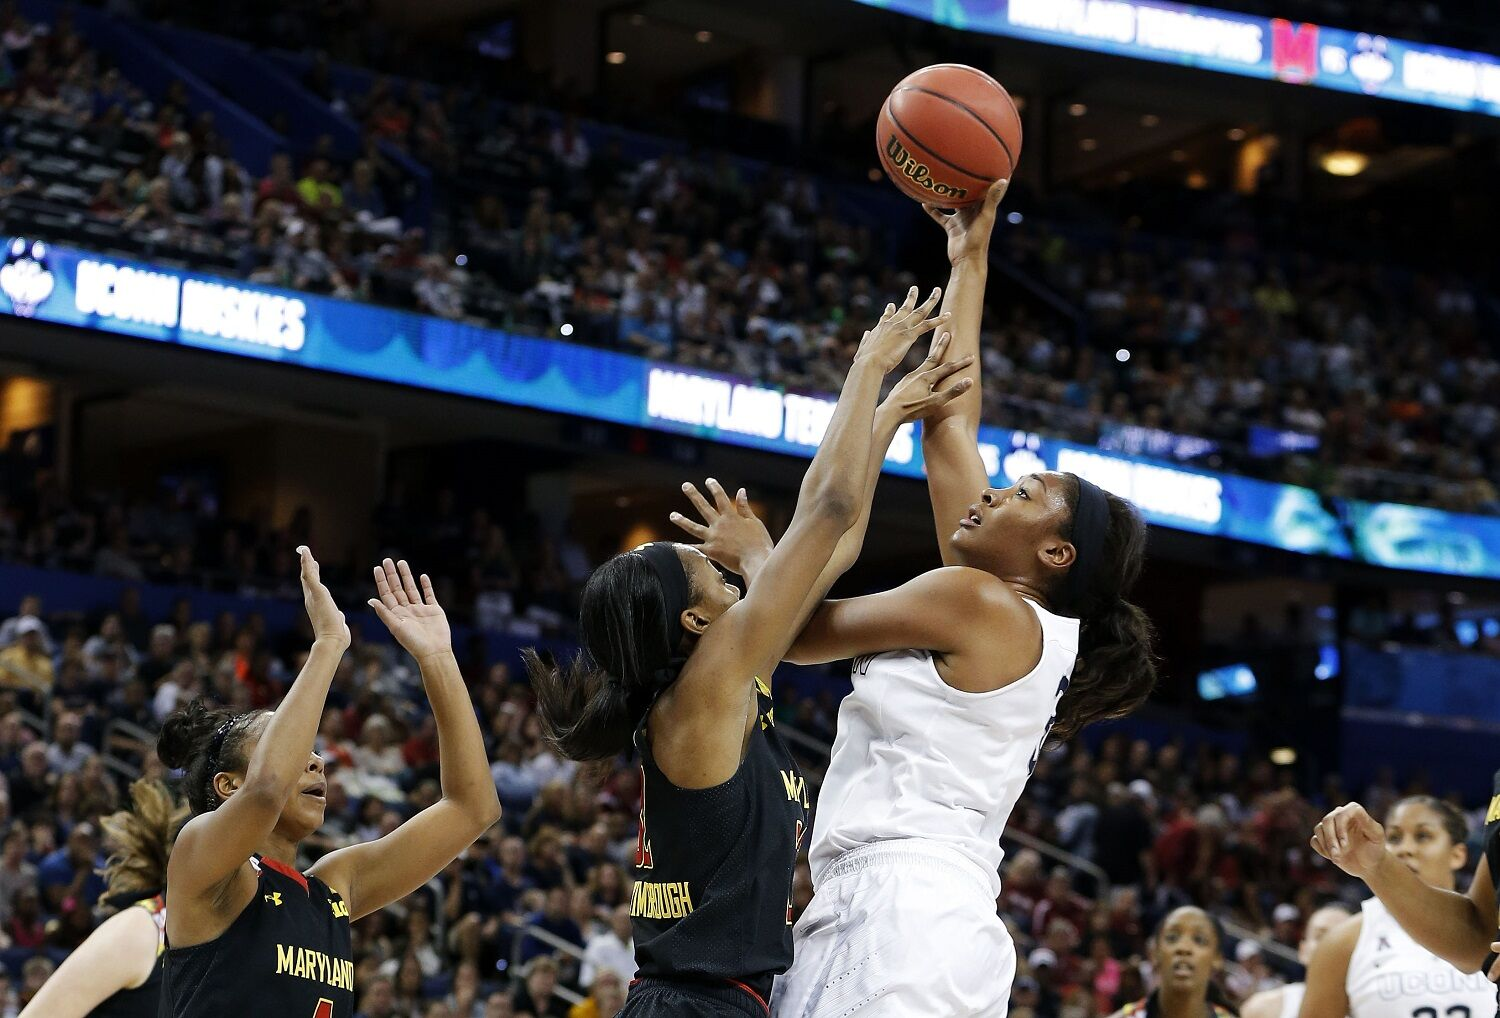 <p><strong>11. Maryland vs. UConn, 2015 NCAA Tournament</strong></p> <p>Few programs have enjoyed as much success as Maryland has under Brenda Frese. But the Terrapins have never toppled UConn, even in their 2006 national title run. That year started a decade of dominance by the Terps team, which made five Elite Eights and three Final Fours. But the 2014-15 squad, sitting on a school record-tying 34 wins and a perfect 18-0 conference record, had to face UConn to reach the national title game. With a chance to finally beat Geno Auriemma, they were walloped, 81-58. While they've returned to the NCAA Tournament and won a game every year since, they've reached the Sweet Sixteen just once in the last four years, and never advanced beyond that.</p>